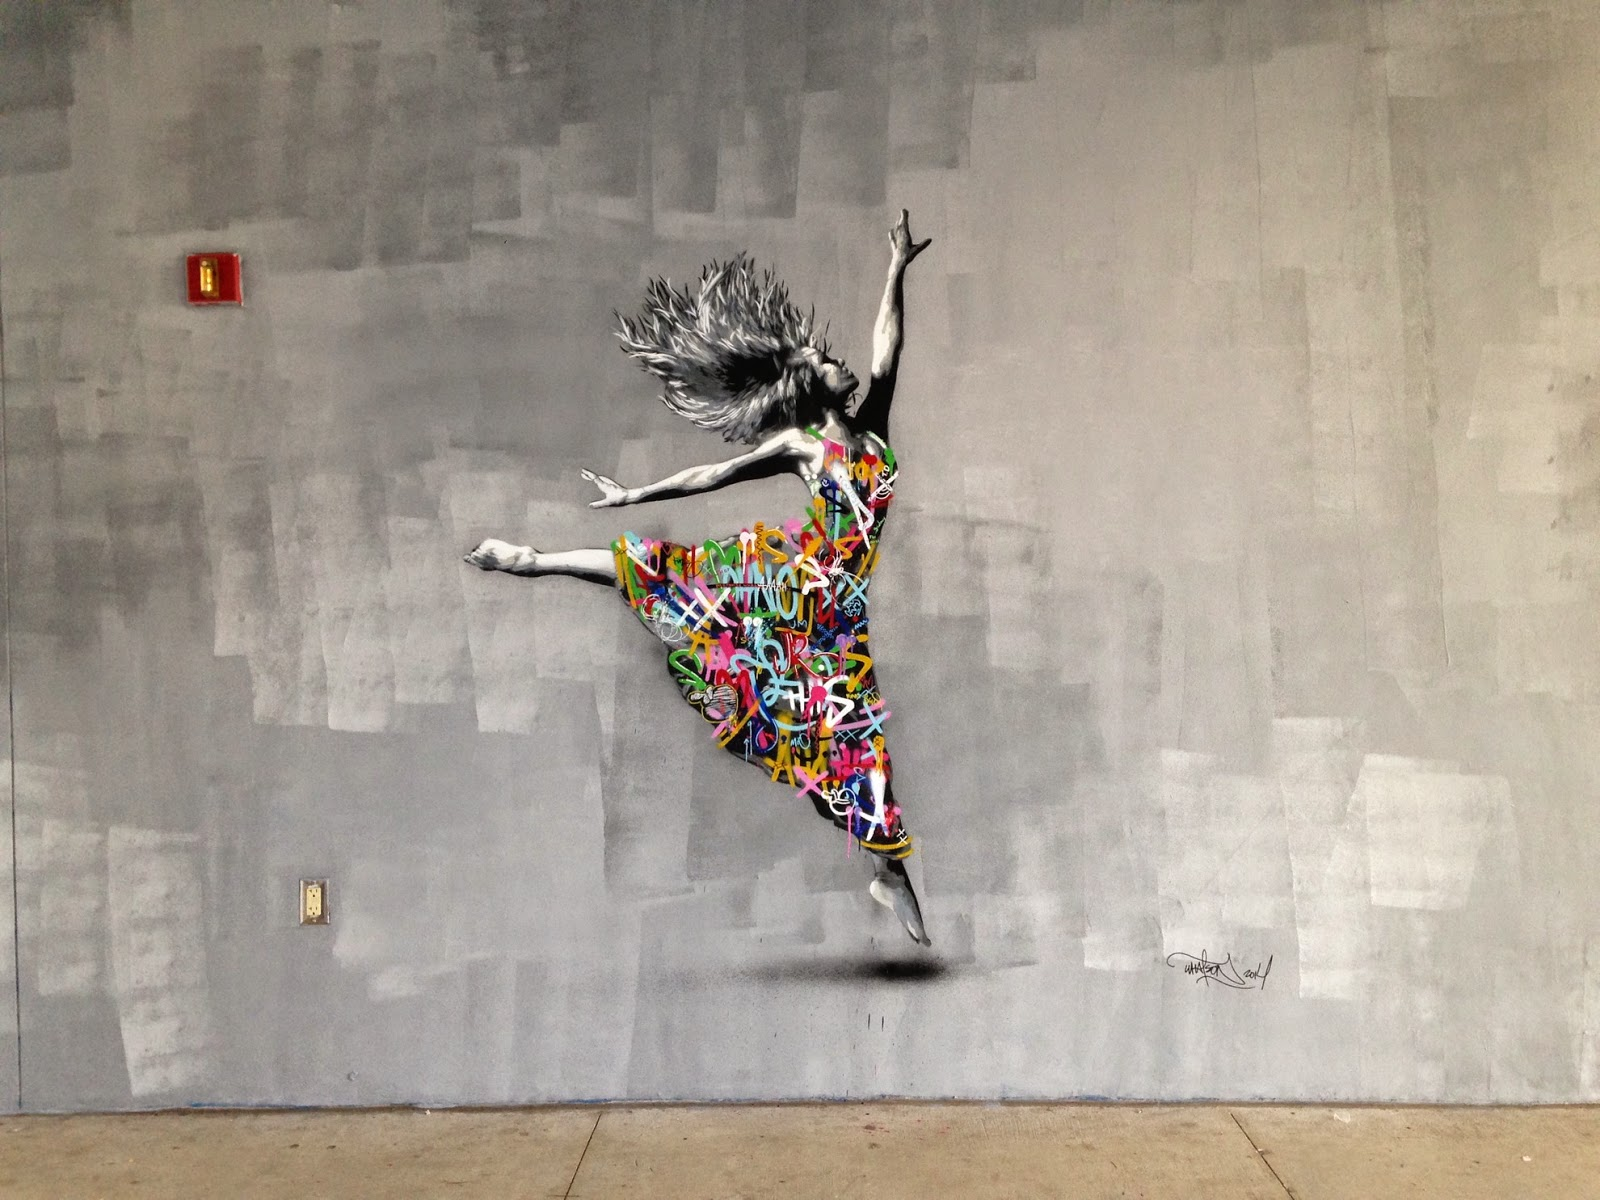 Hailing from Norway, Martin Whatson fleed the cold winter from Oslo and headed straight to Miami for Art Basel 2014.